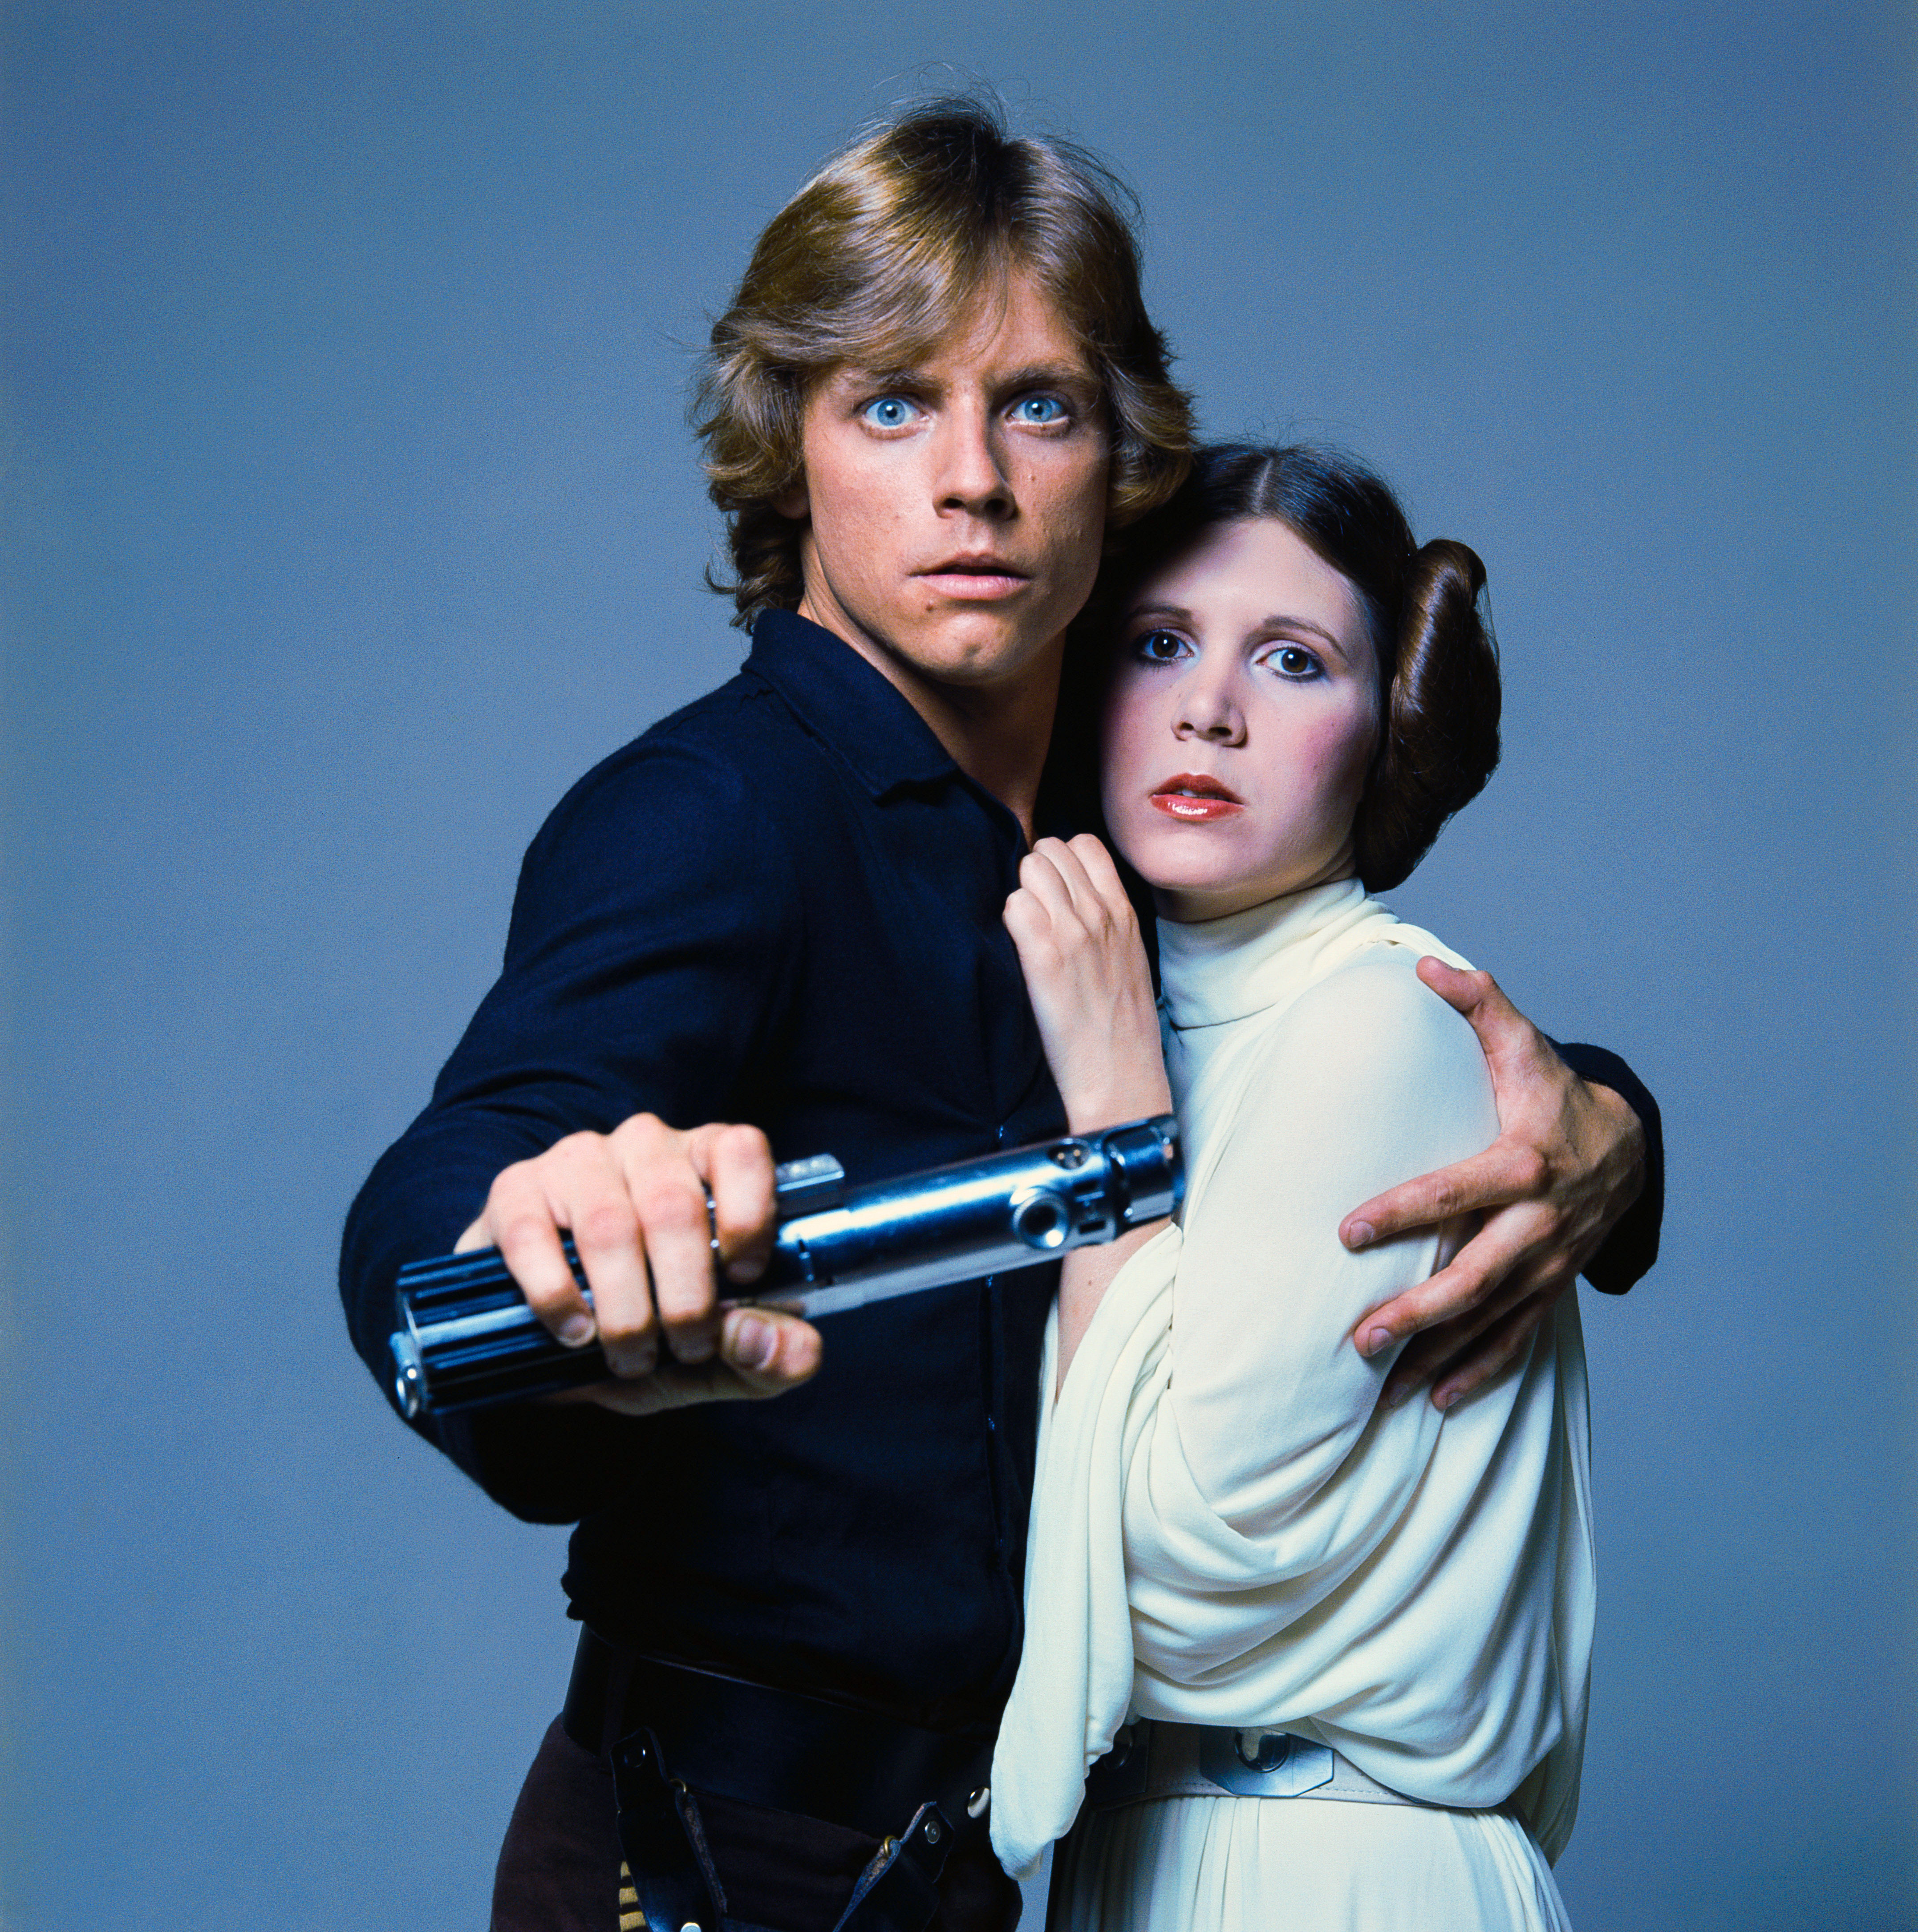 ANH Graflex - Mark Hamill and Carrie Fisher as Luke Skywalker and Princess Leia 1977 photo by ...jpg